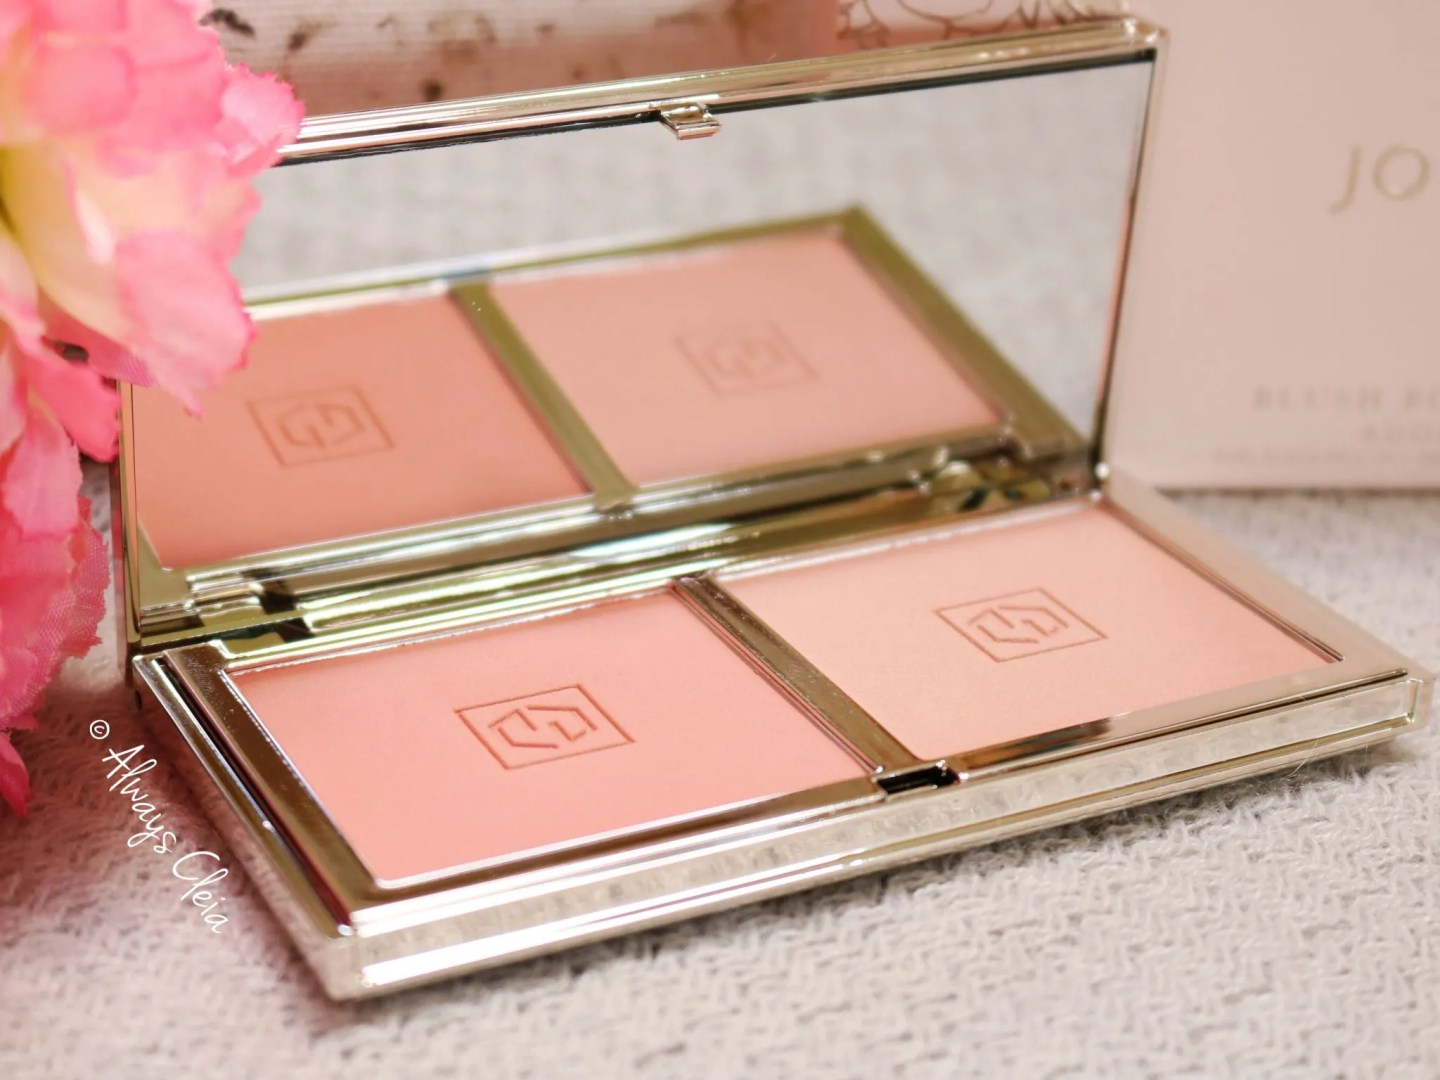 Jouer Blush Duo in Adore